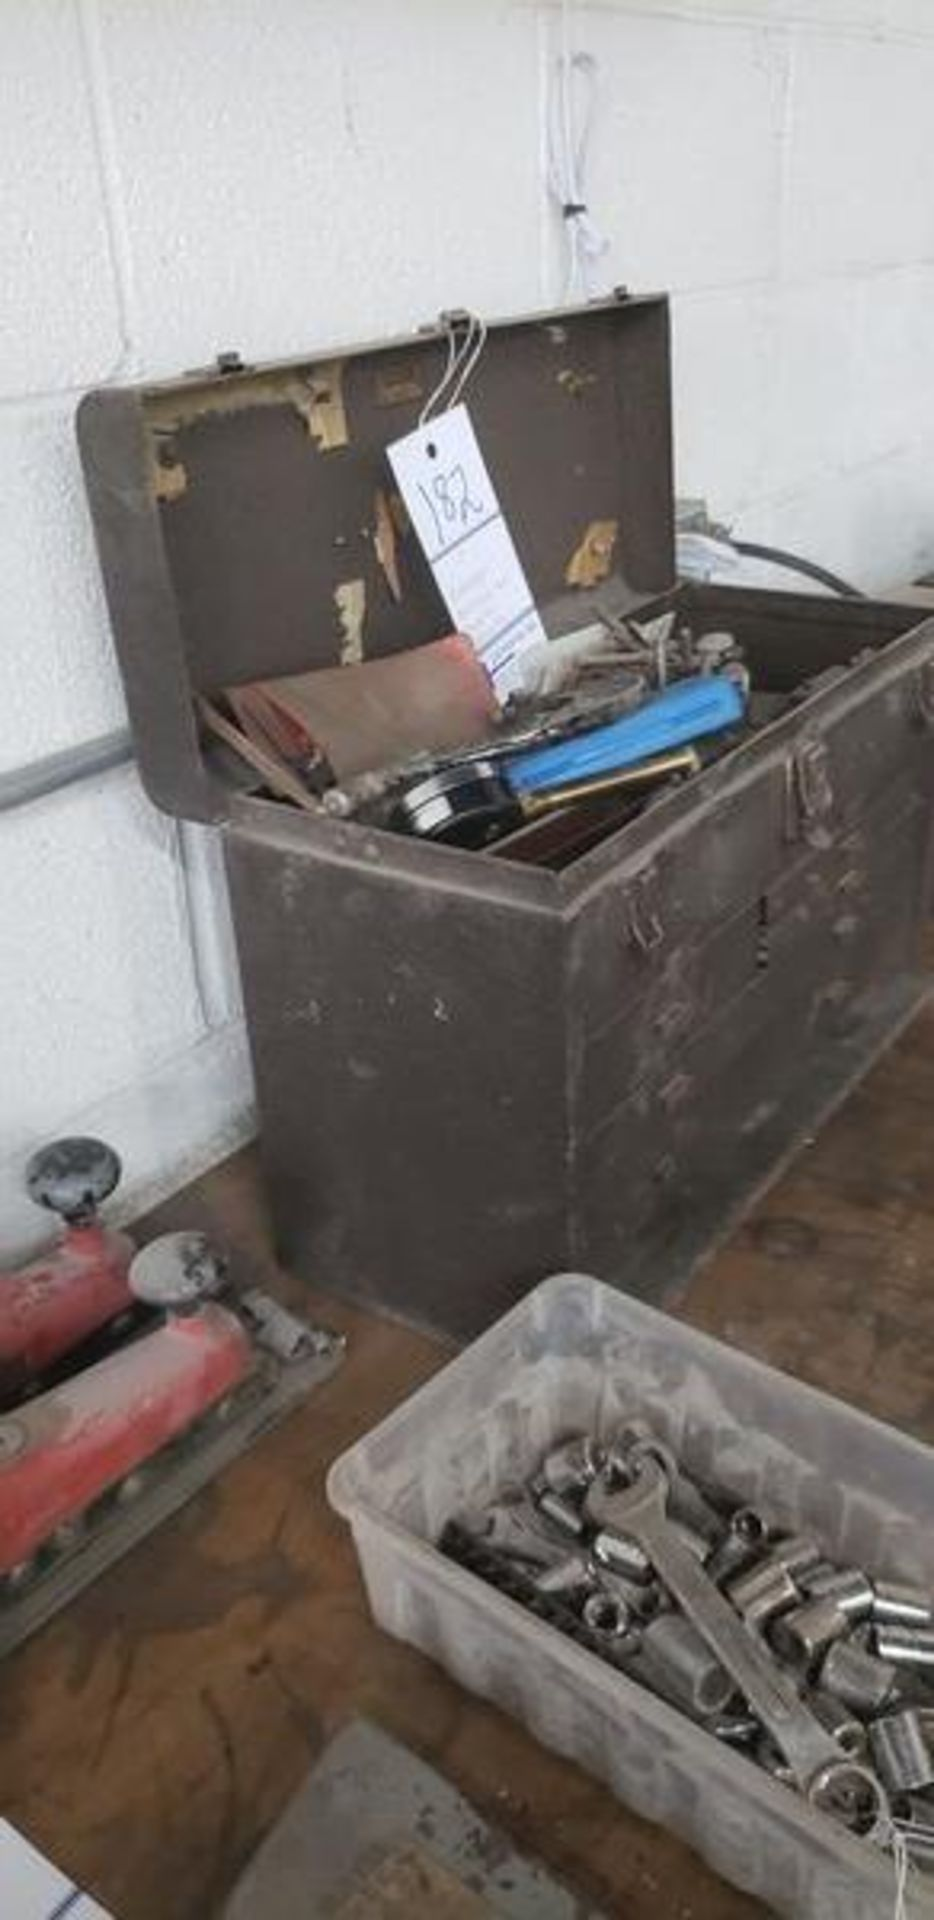 KENNEDY MACHINIST TOOL CHEST WITH CONTENTS - Image 2 of 11